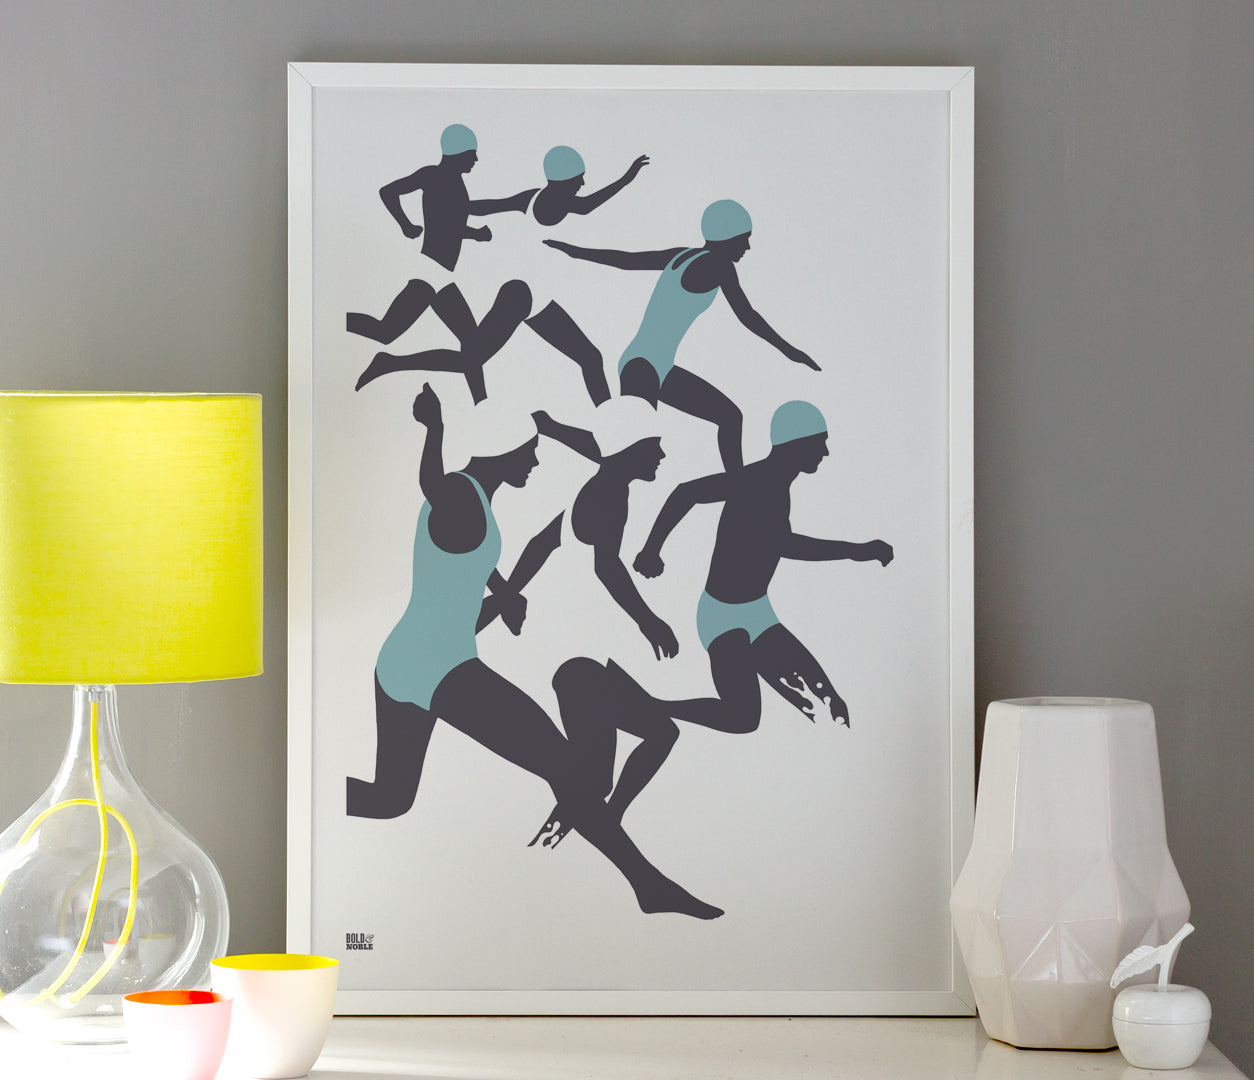 Triathlon, Swimming Wall Art Design, Modern Print Designs for the Home